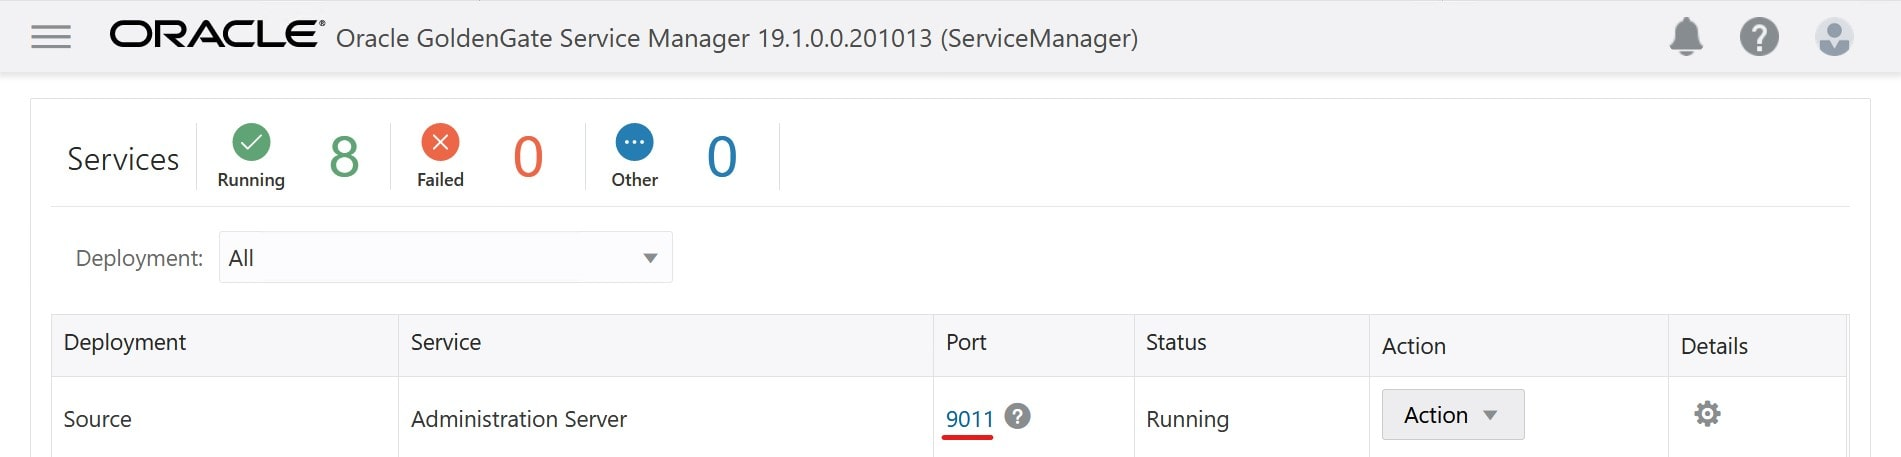 Click on the port number to go to the specific console